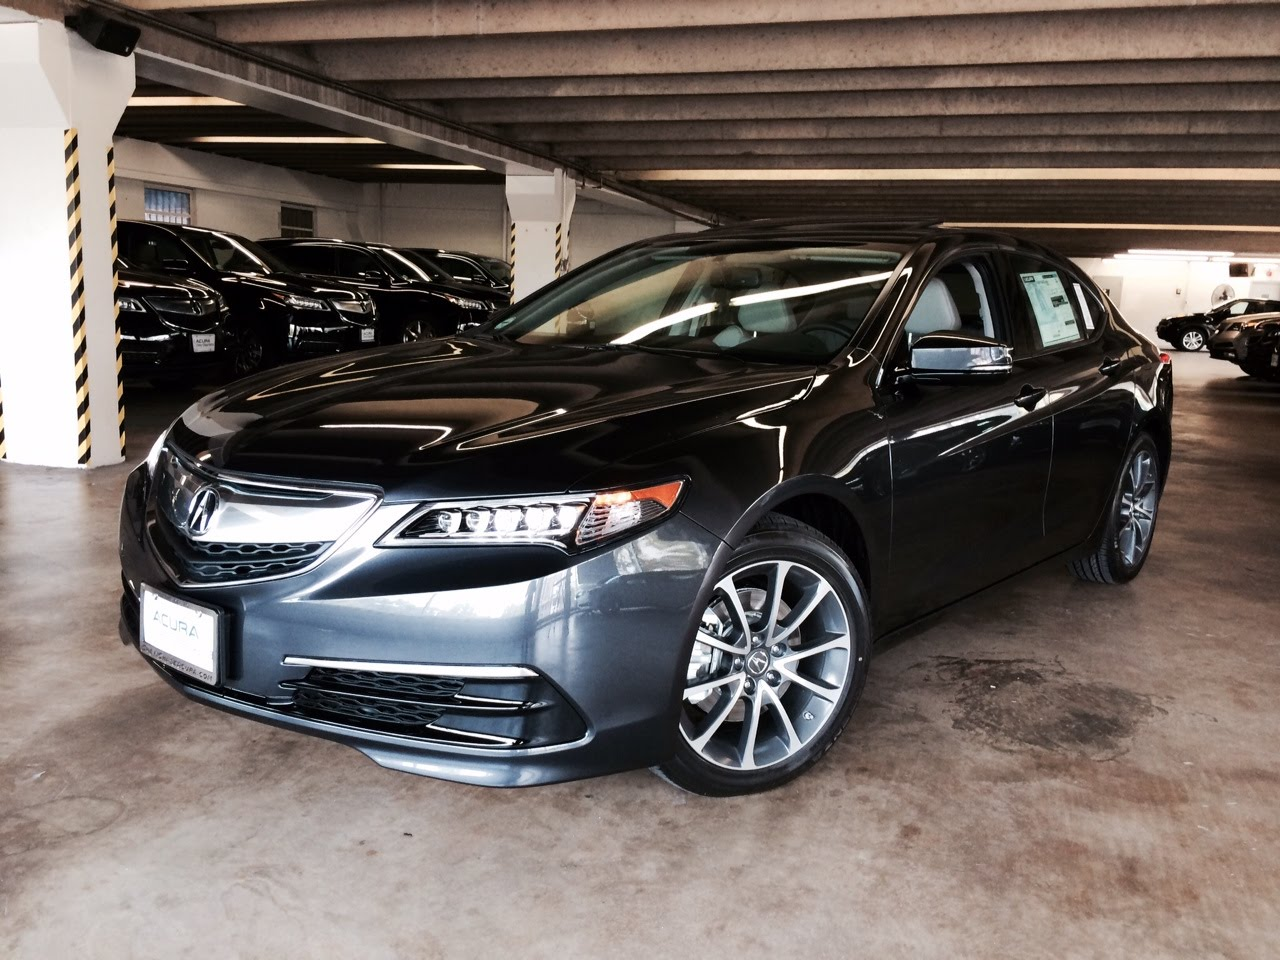 2015 Acura Tlx Car Review Video Florida